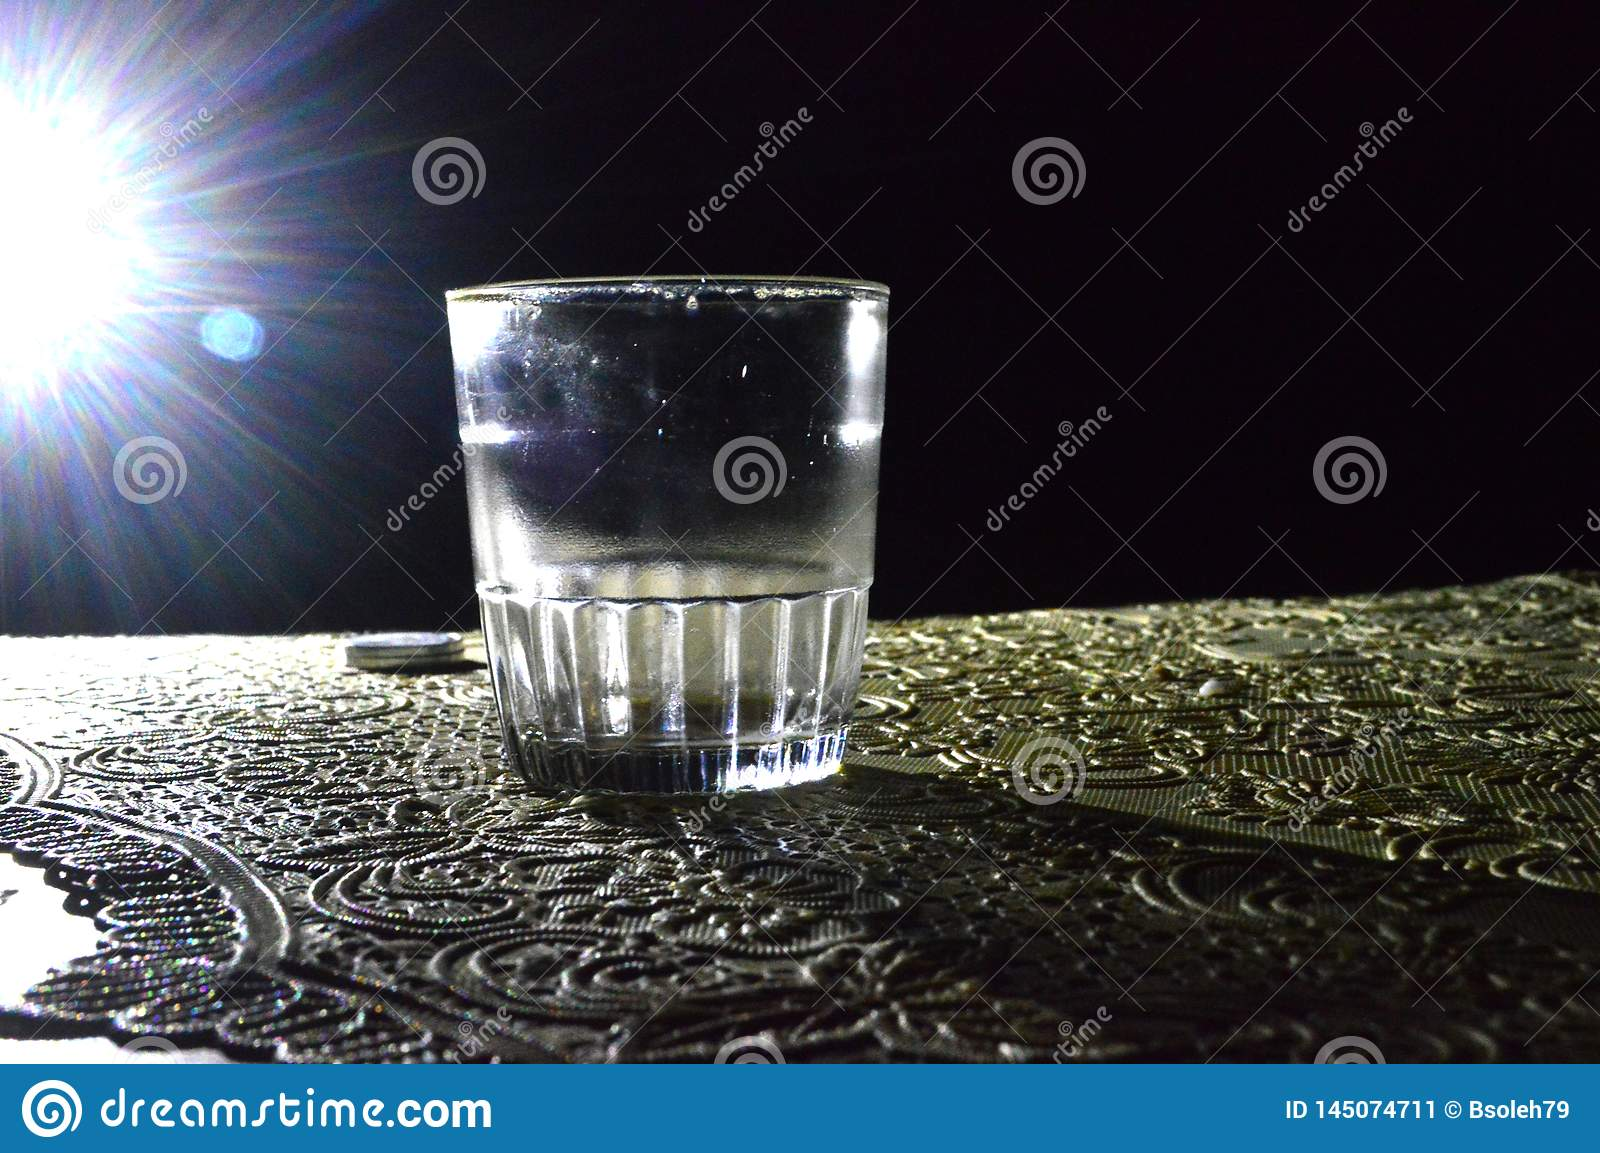 A picture of a glass in the dark with a little light